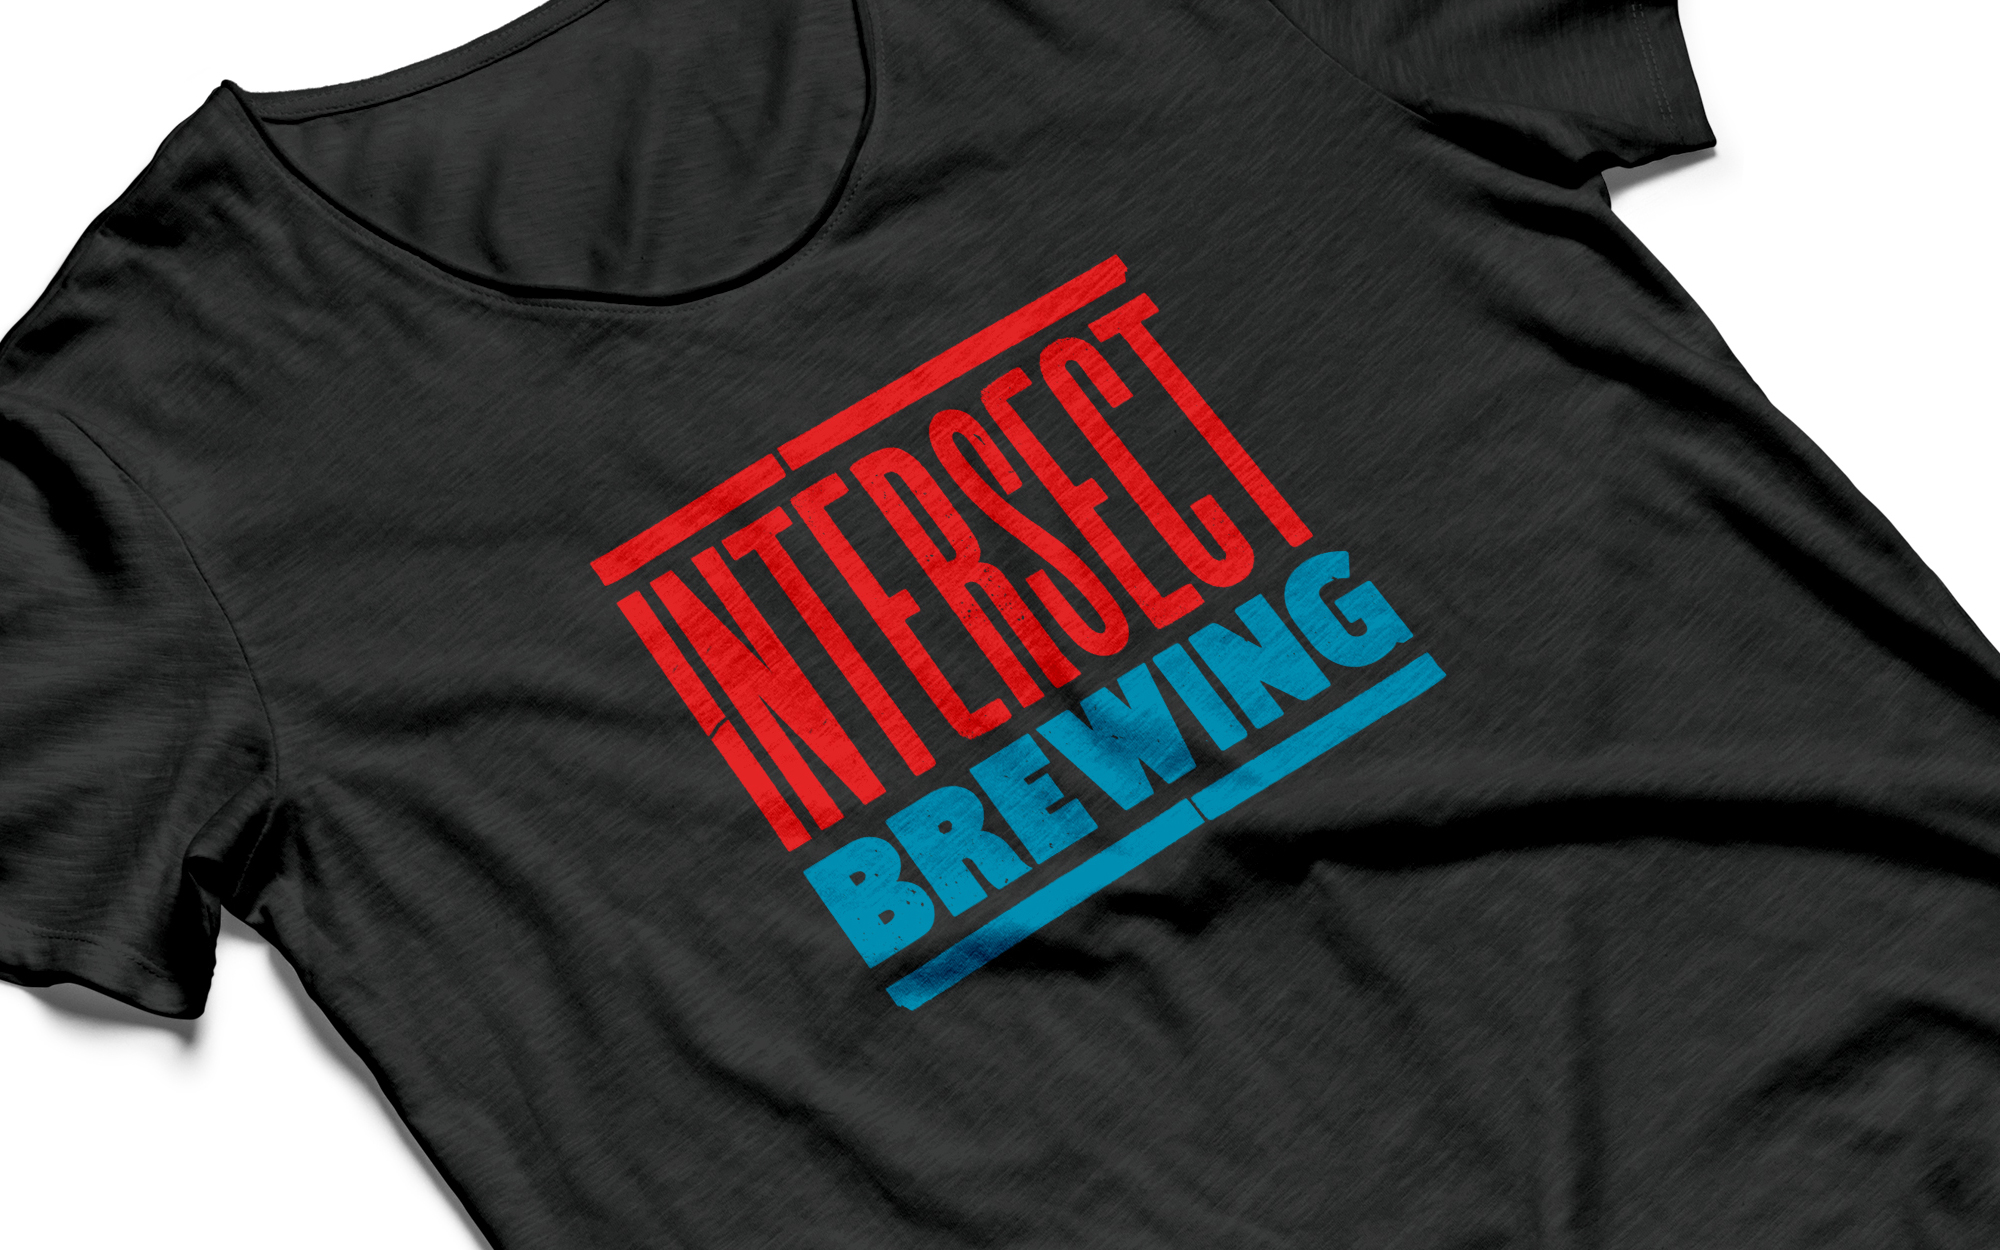 IntersectBrewing_Shirt_02.jpg